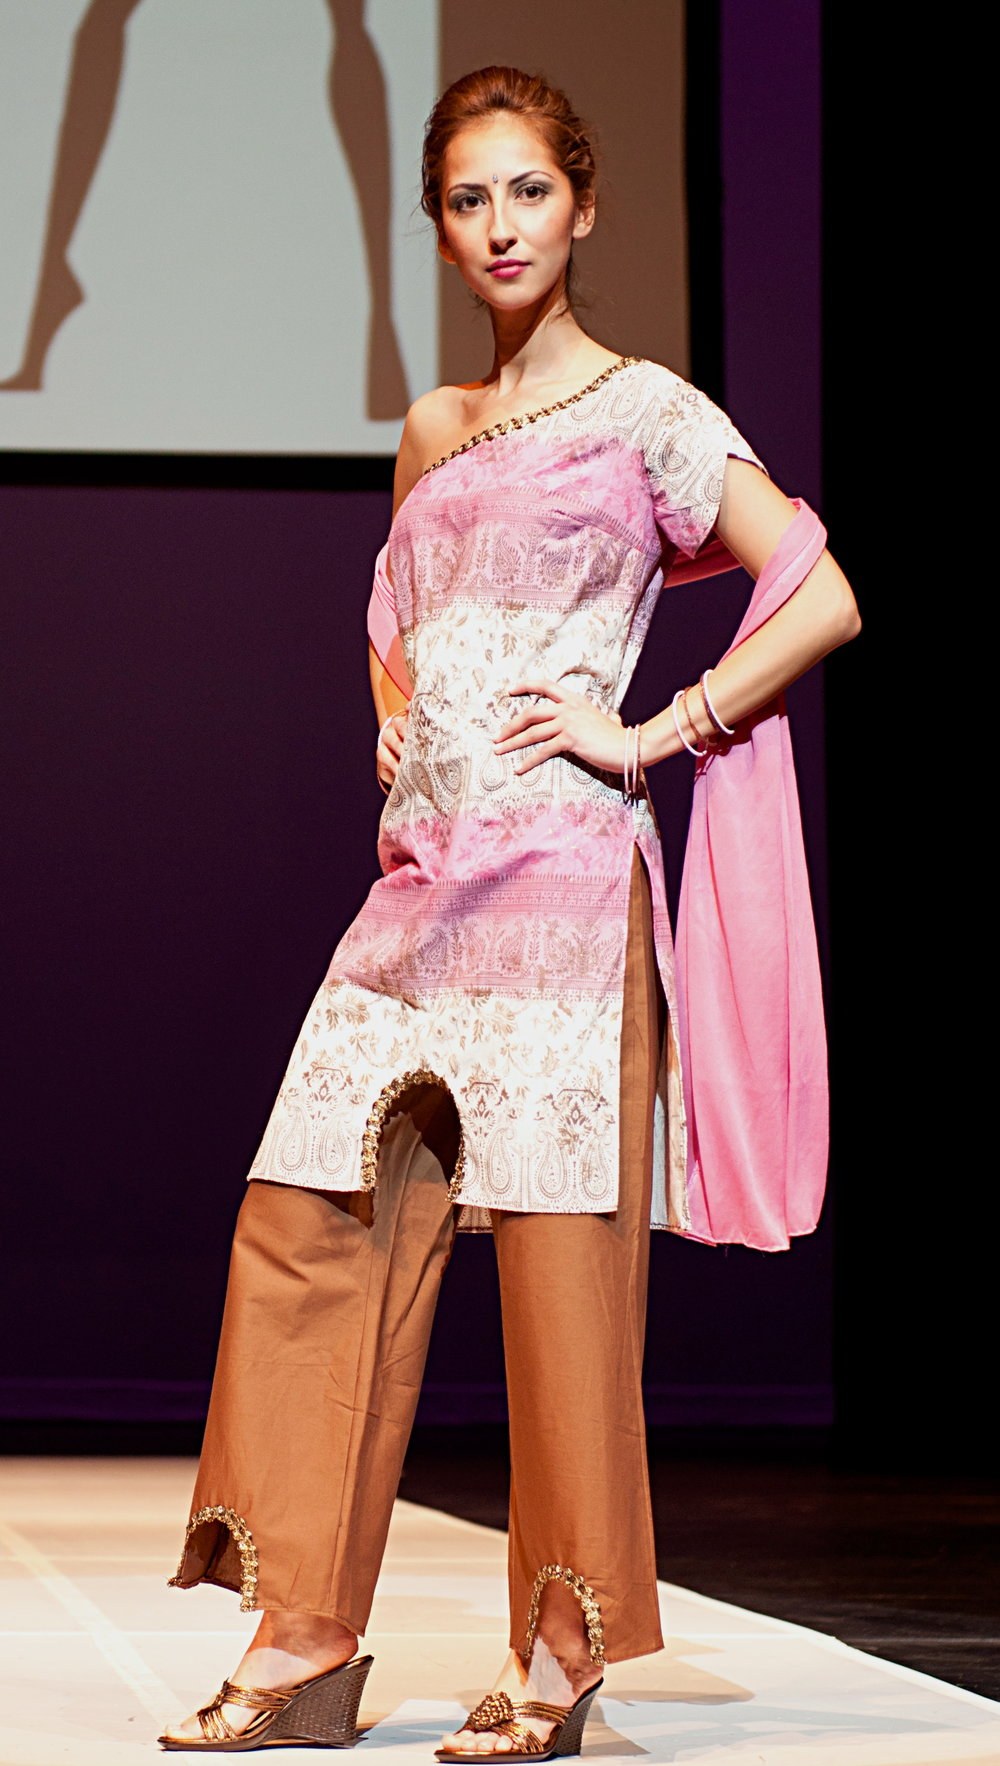 Tunic top and matching pants showcased at school fashion show